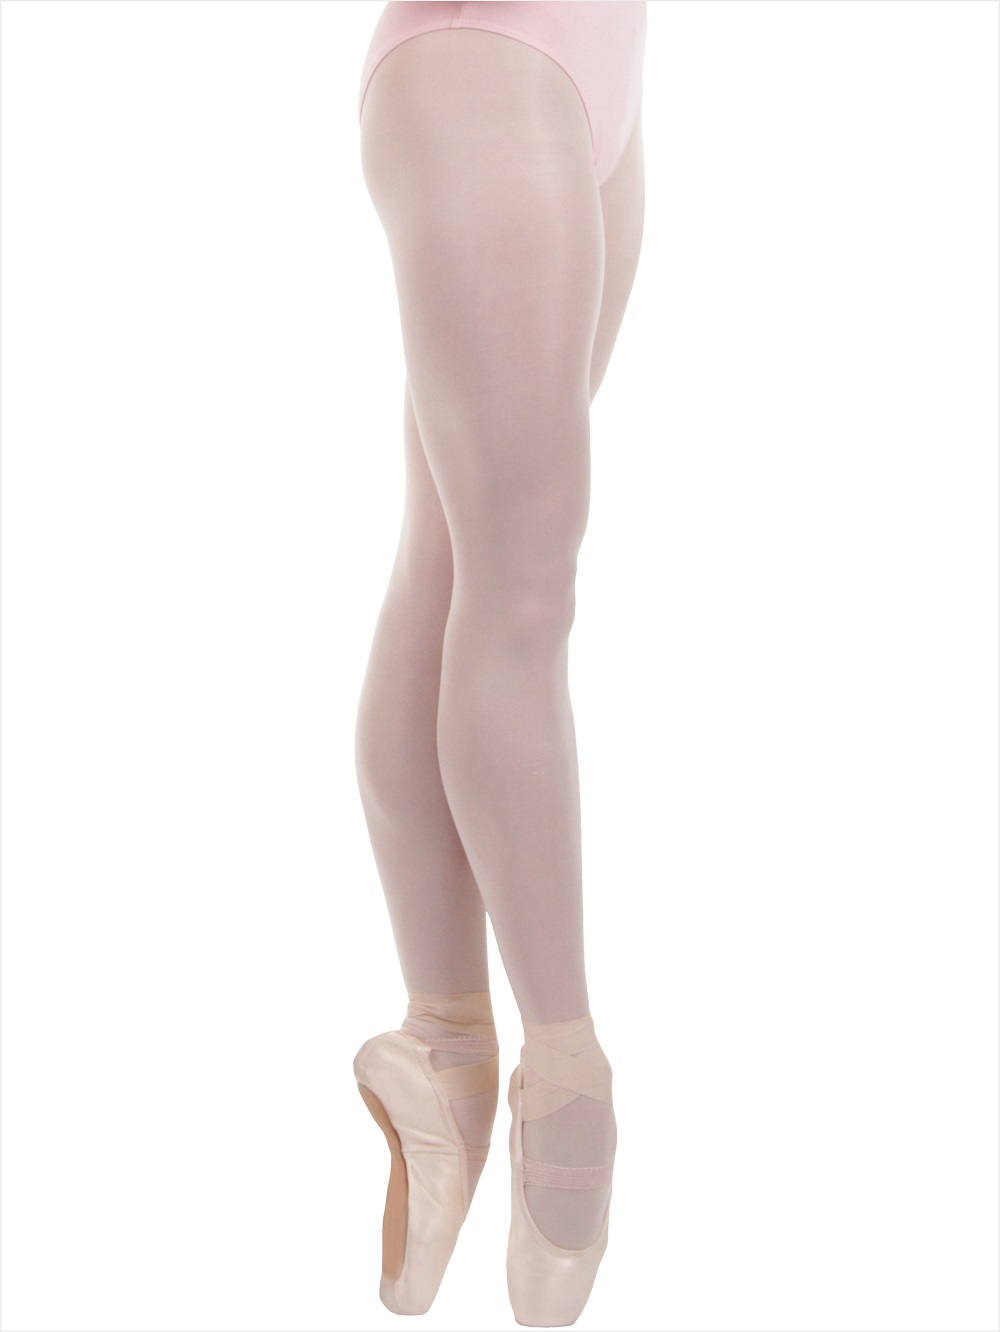 Dance and ballet tights SOLO TR13 (40 DEN) pink, size IIII (152-158)